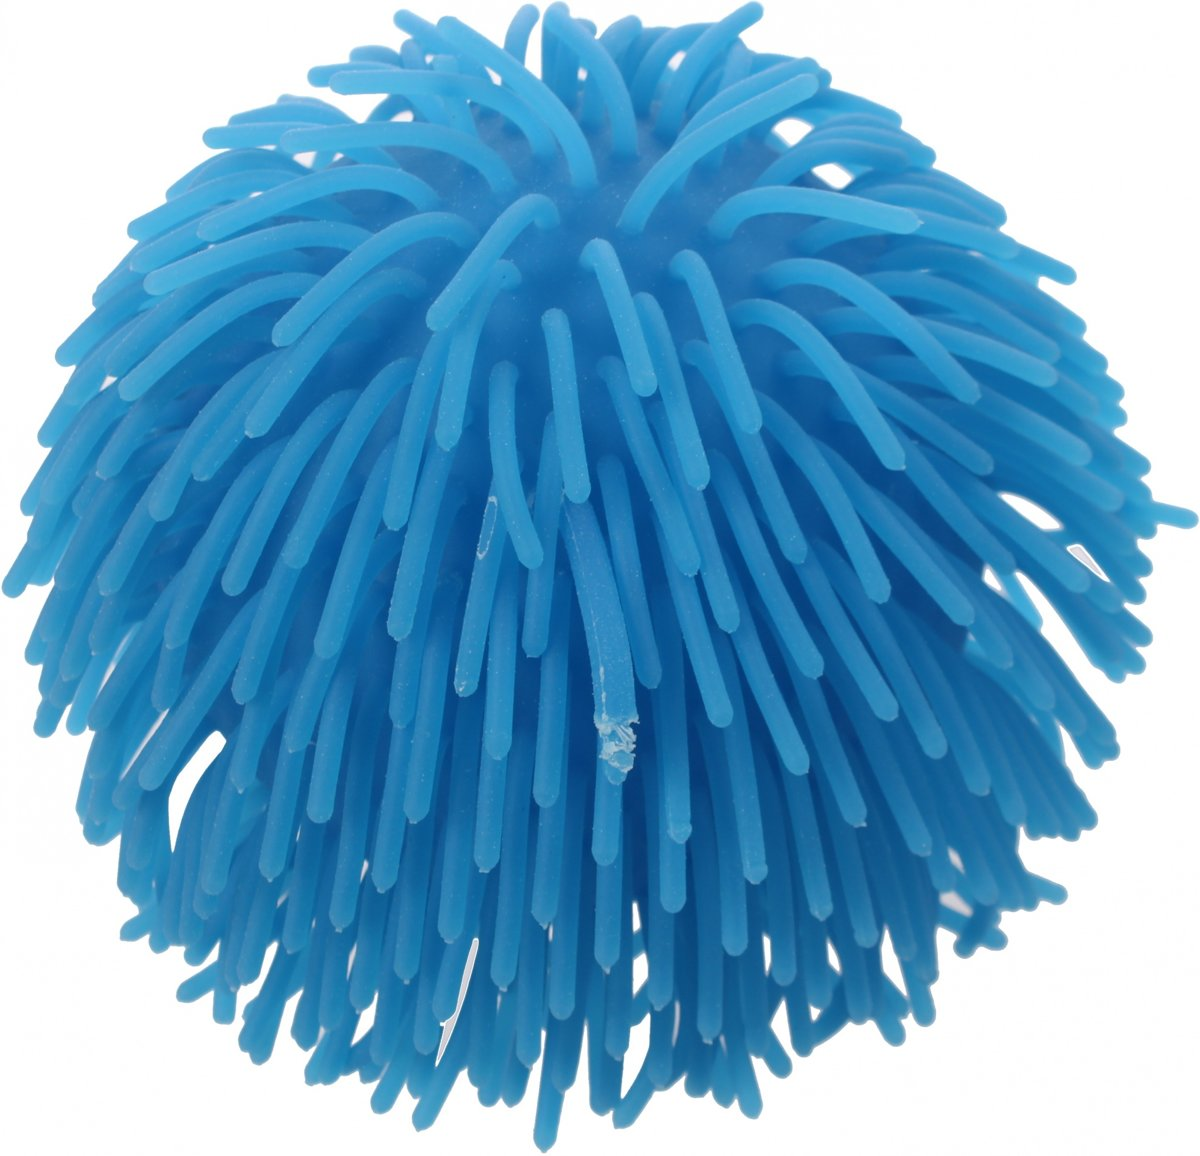 Fluffy Bal Blauw 140 Mm